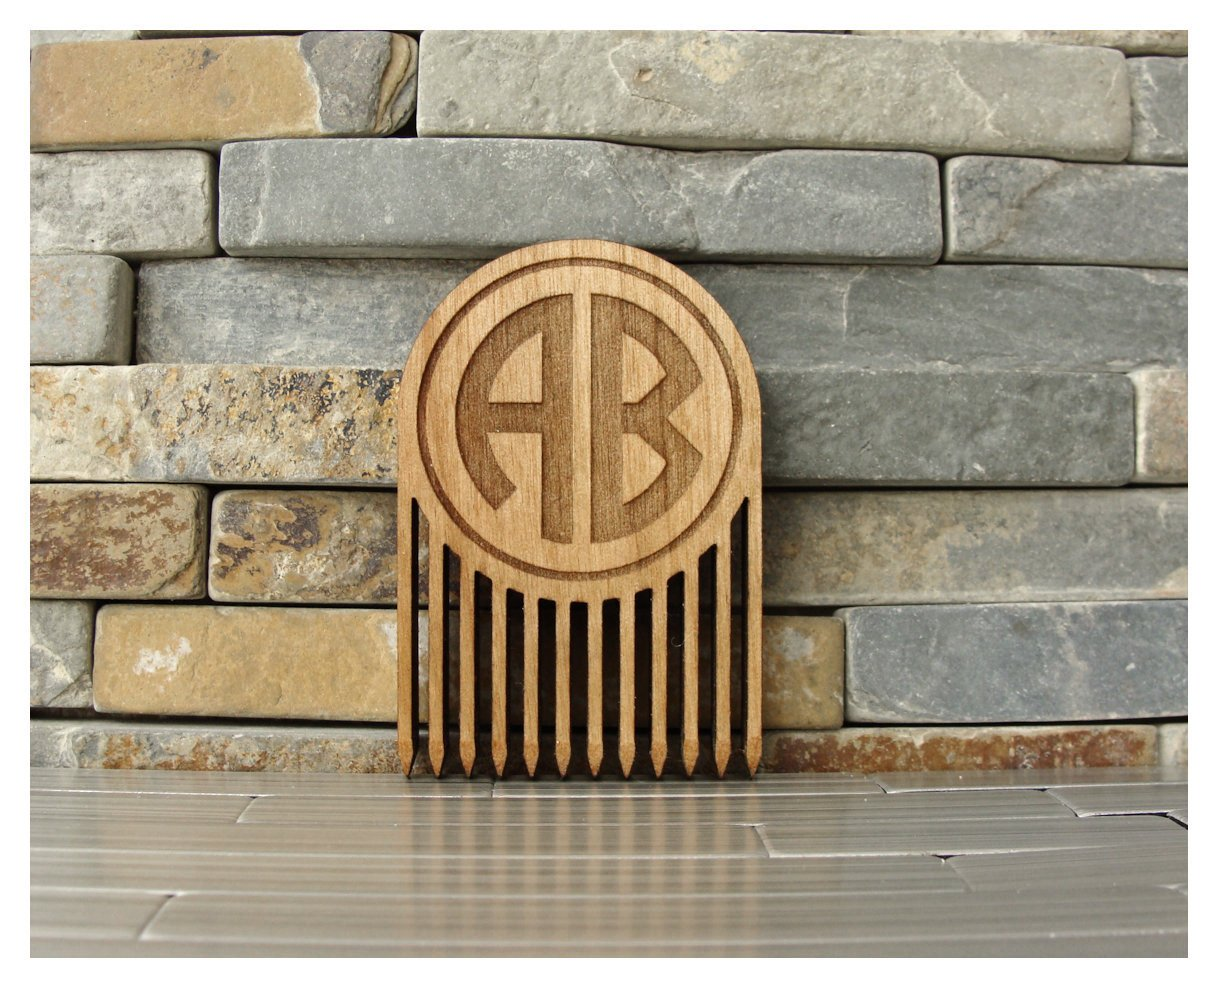 Personalized Wood Beard Comb with 2 Letter Monogram